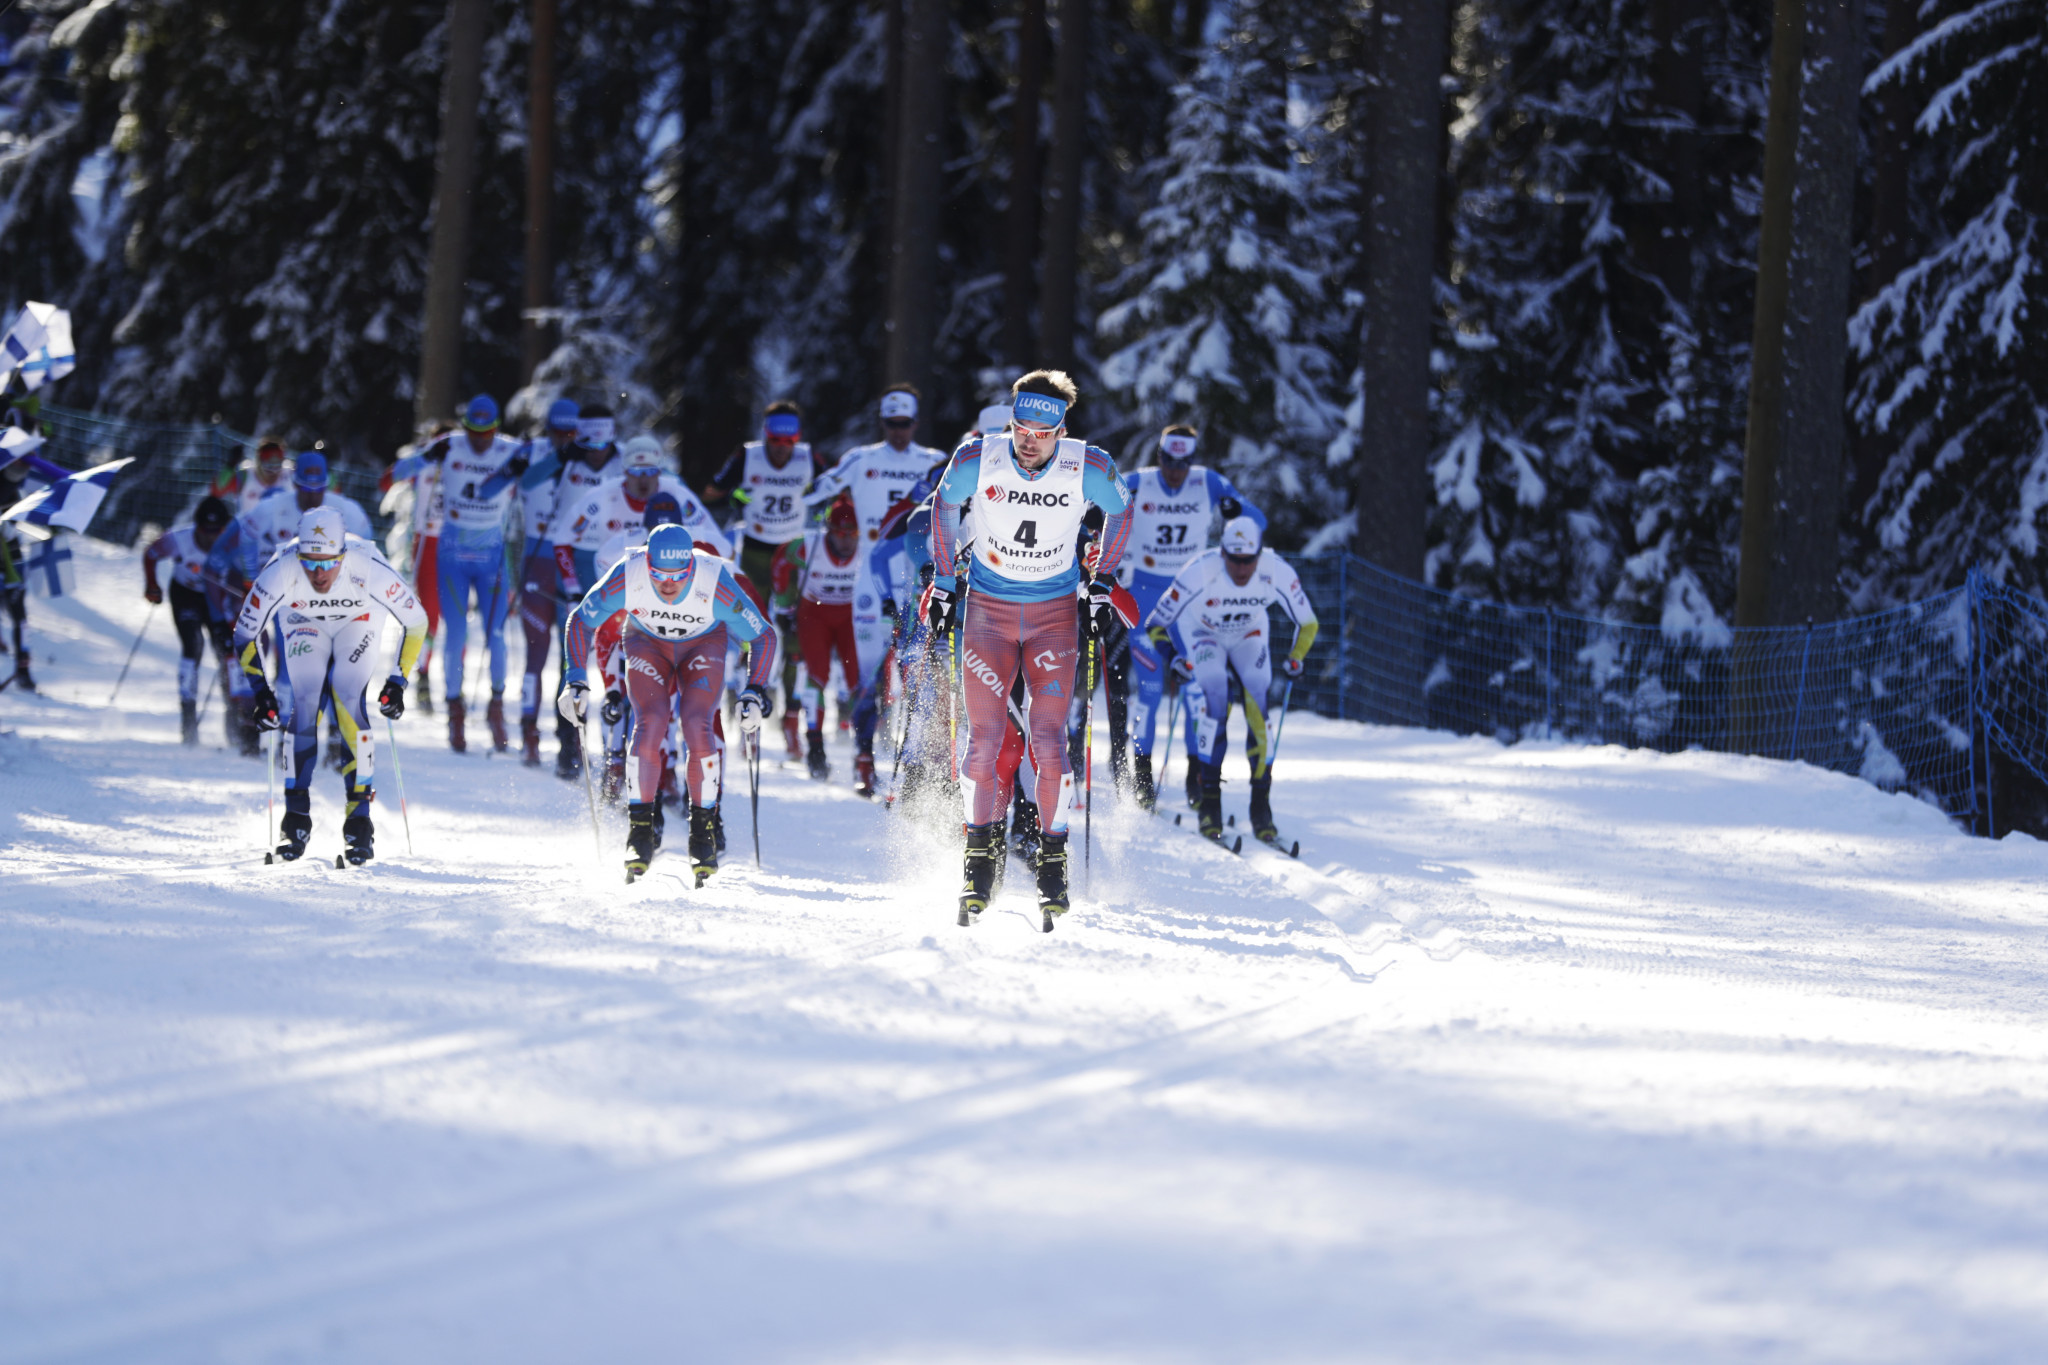 Taking the skiathlon away from the programme at major events has been given as one option ©Getty Images